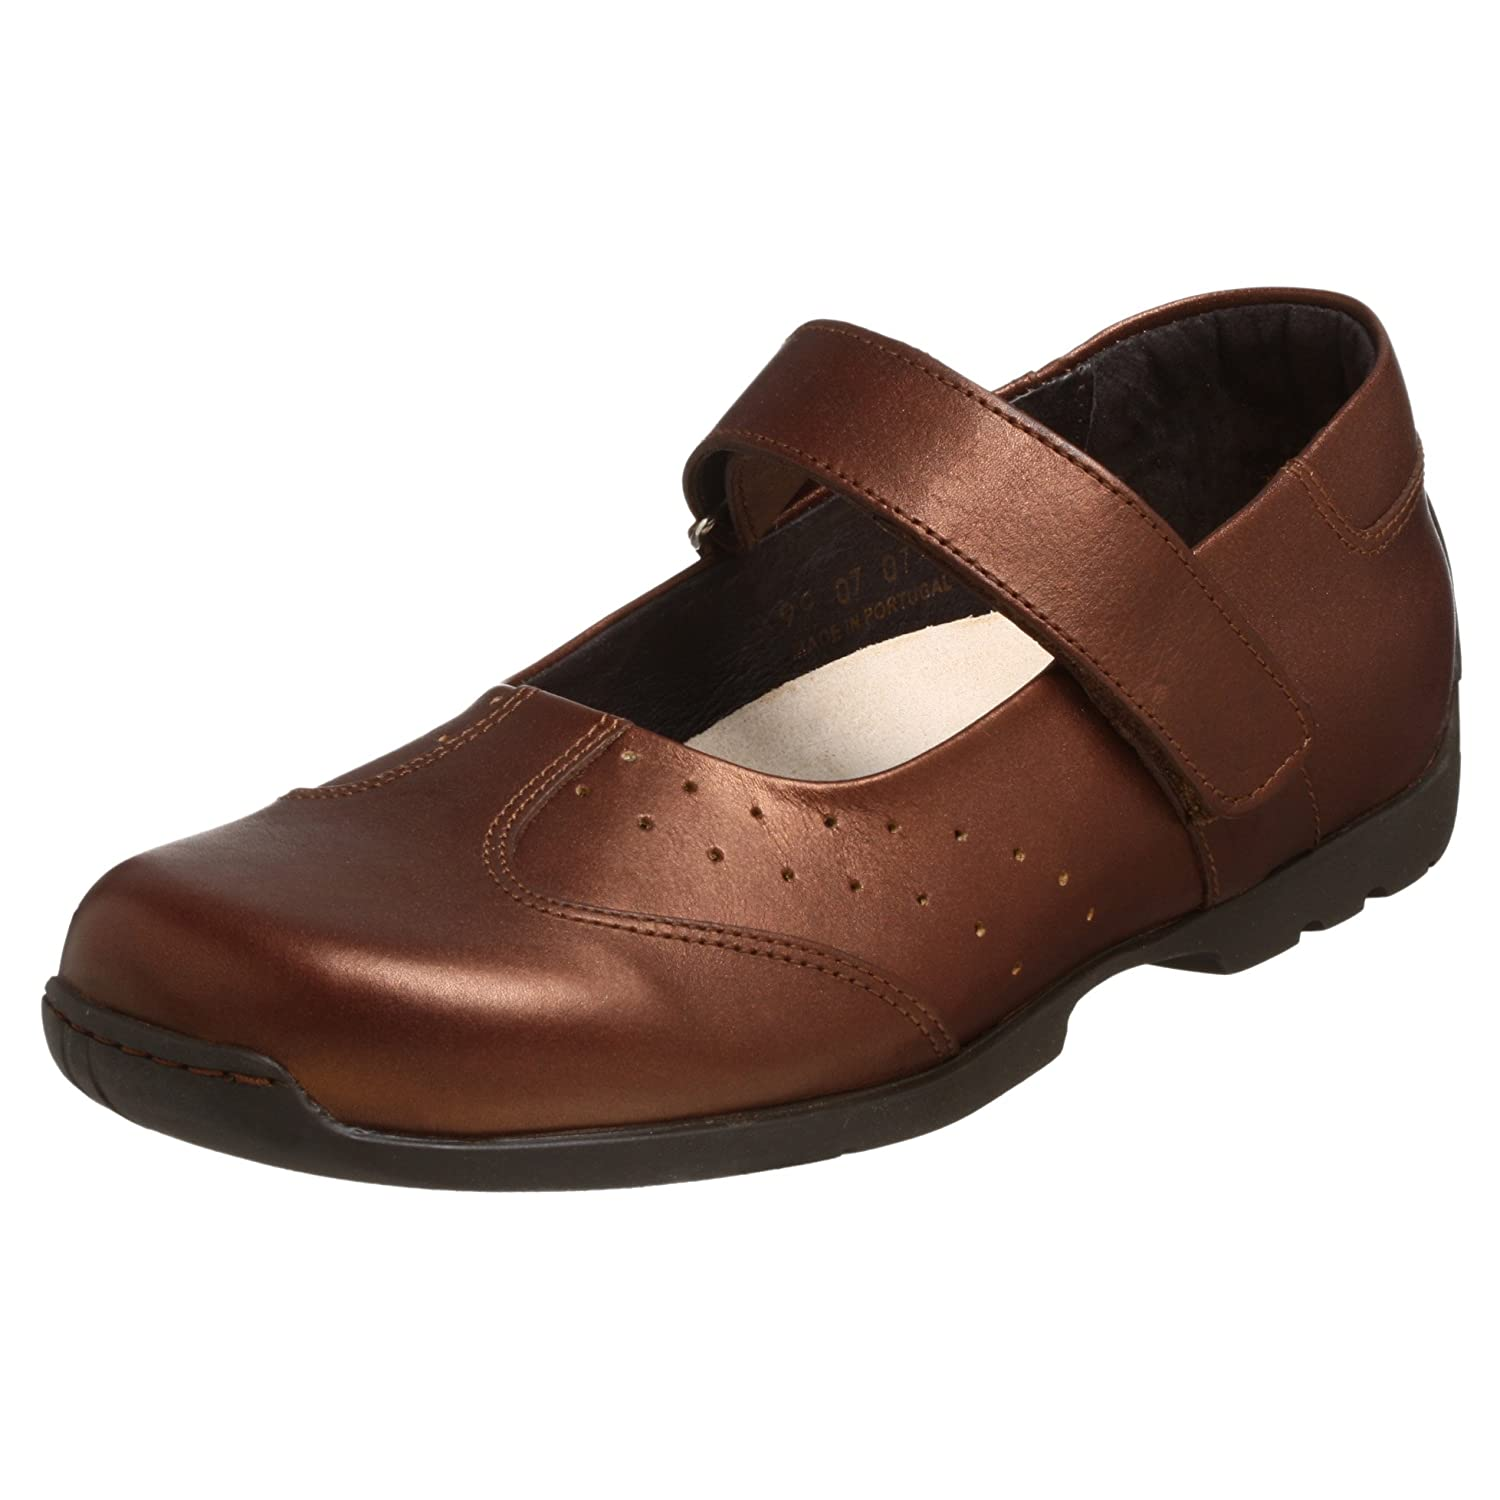 FOOTPRINTS Women's Pittsburg Mary Jane Dark Gold